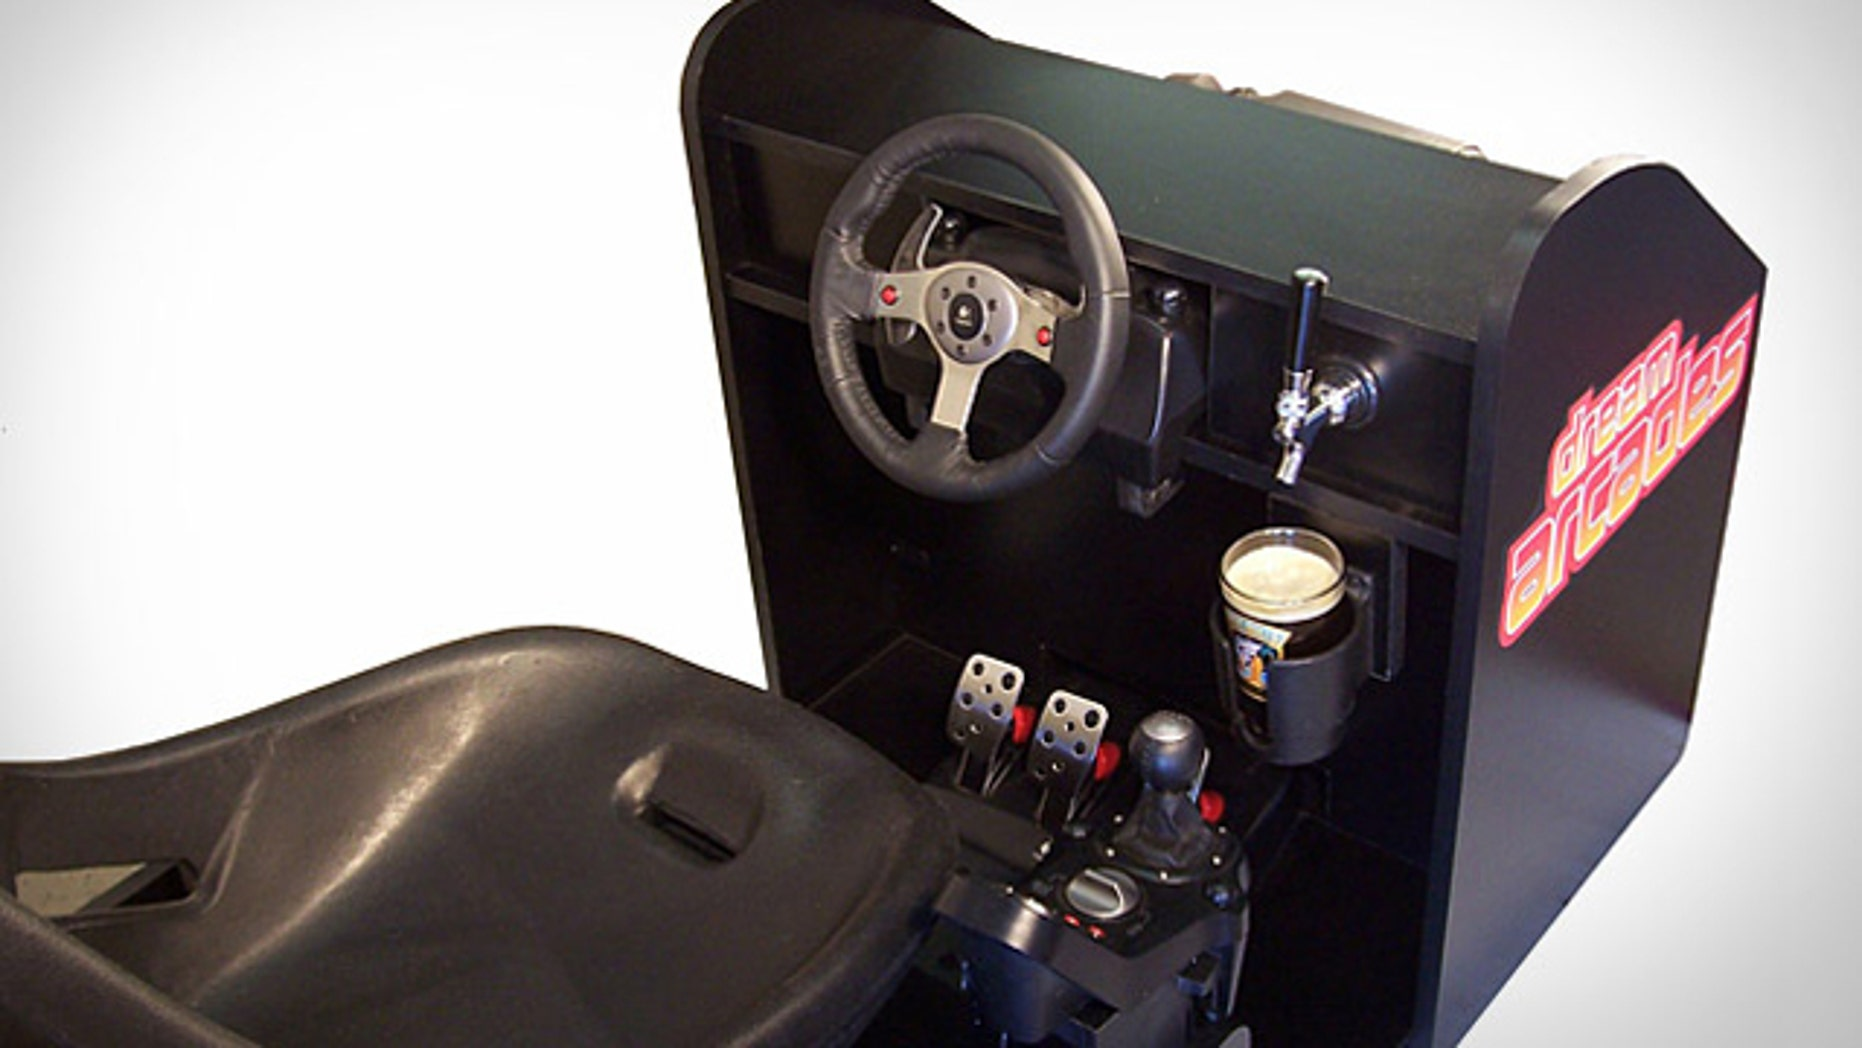 The Octane 120 Pro is the ultimate in home arcade gaming, and combines three things every gamer wants: classic arcade games, arcade-style racing, and a beer tap to get your favorite beverage without having to get out of the seat.